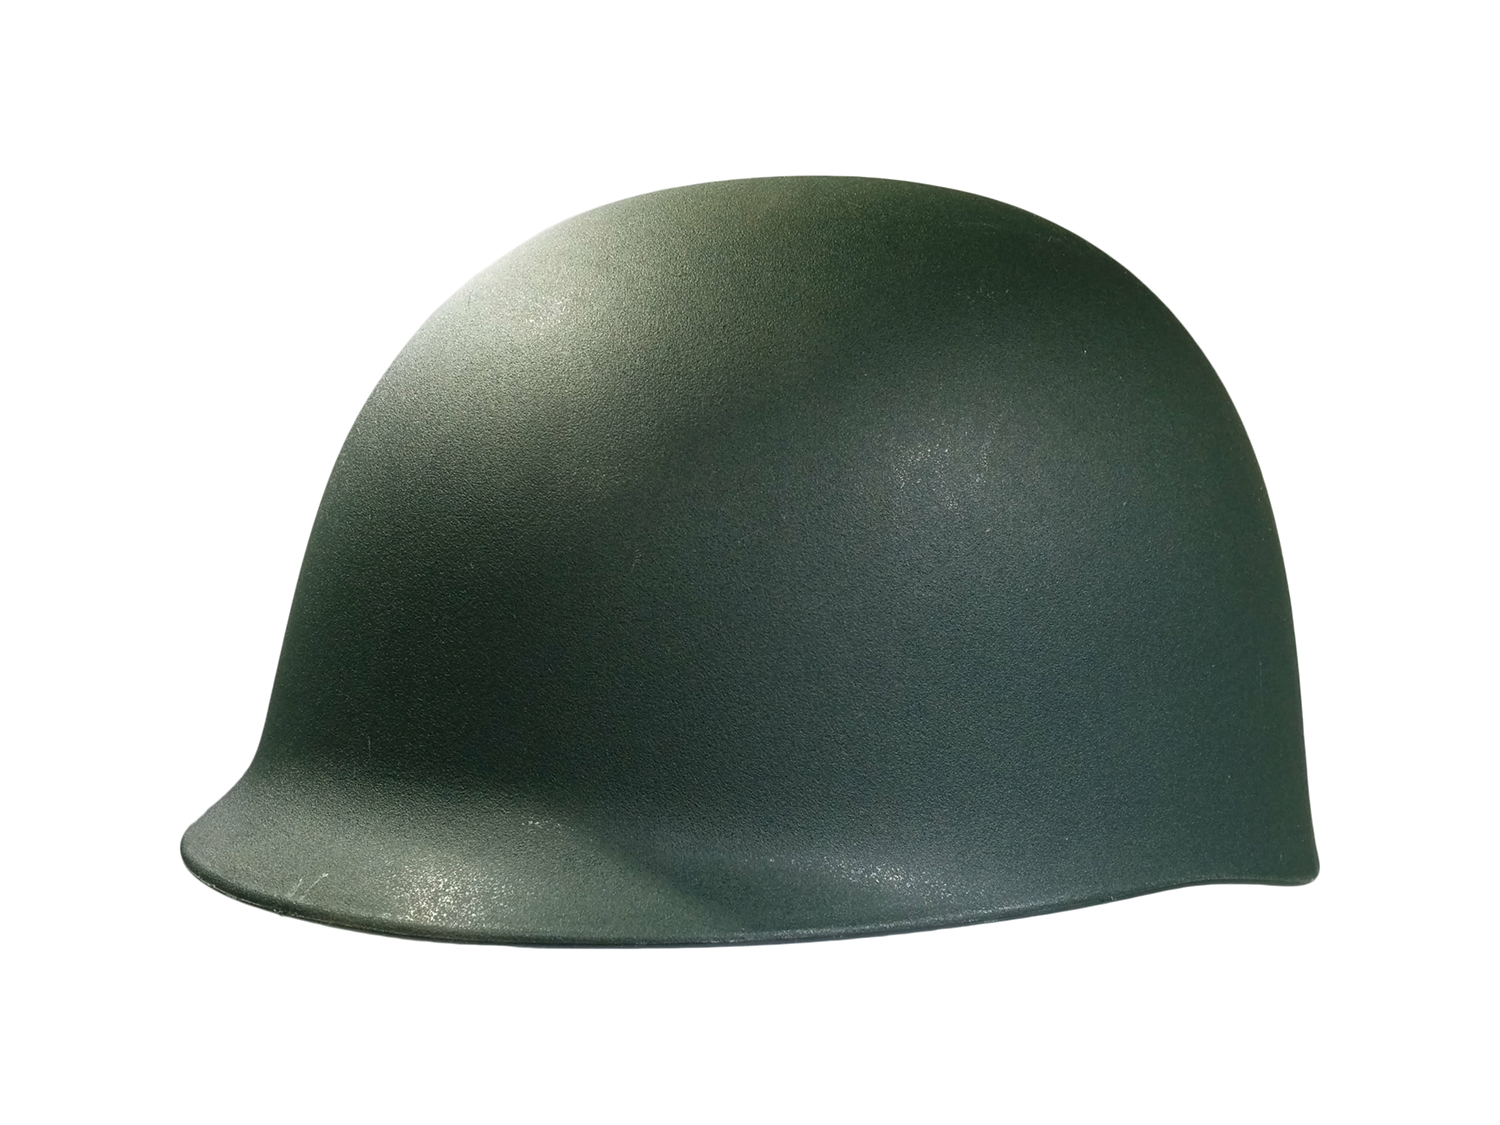 36aa4eb1efd Adult Army M1 Helmet Costume Replica Hat Soldier Military War Reenactment